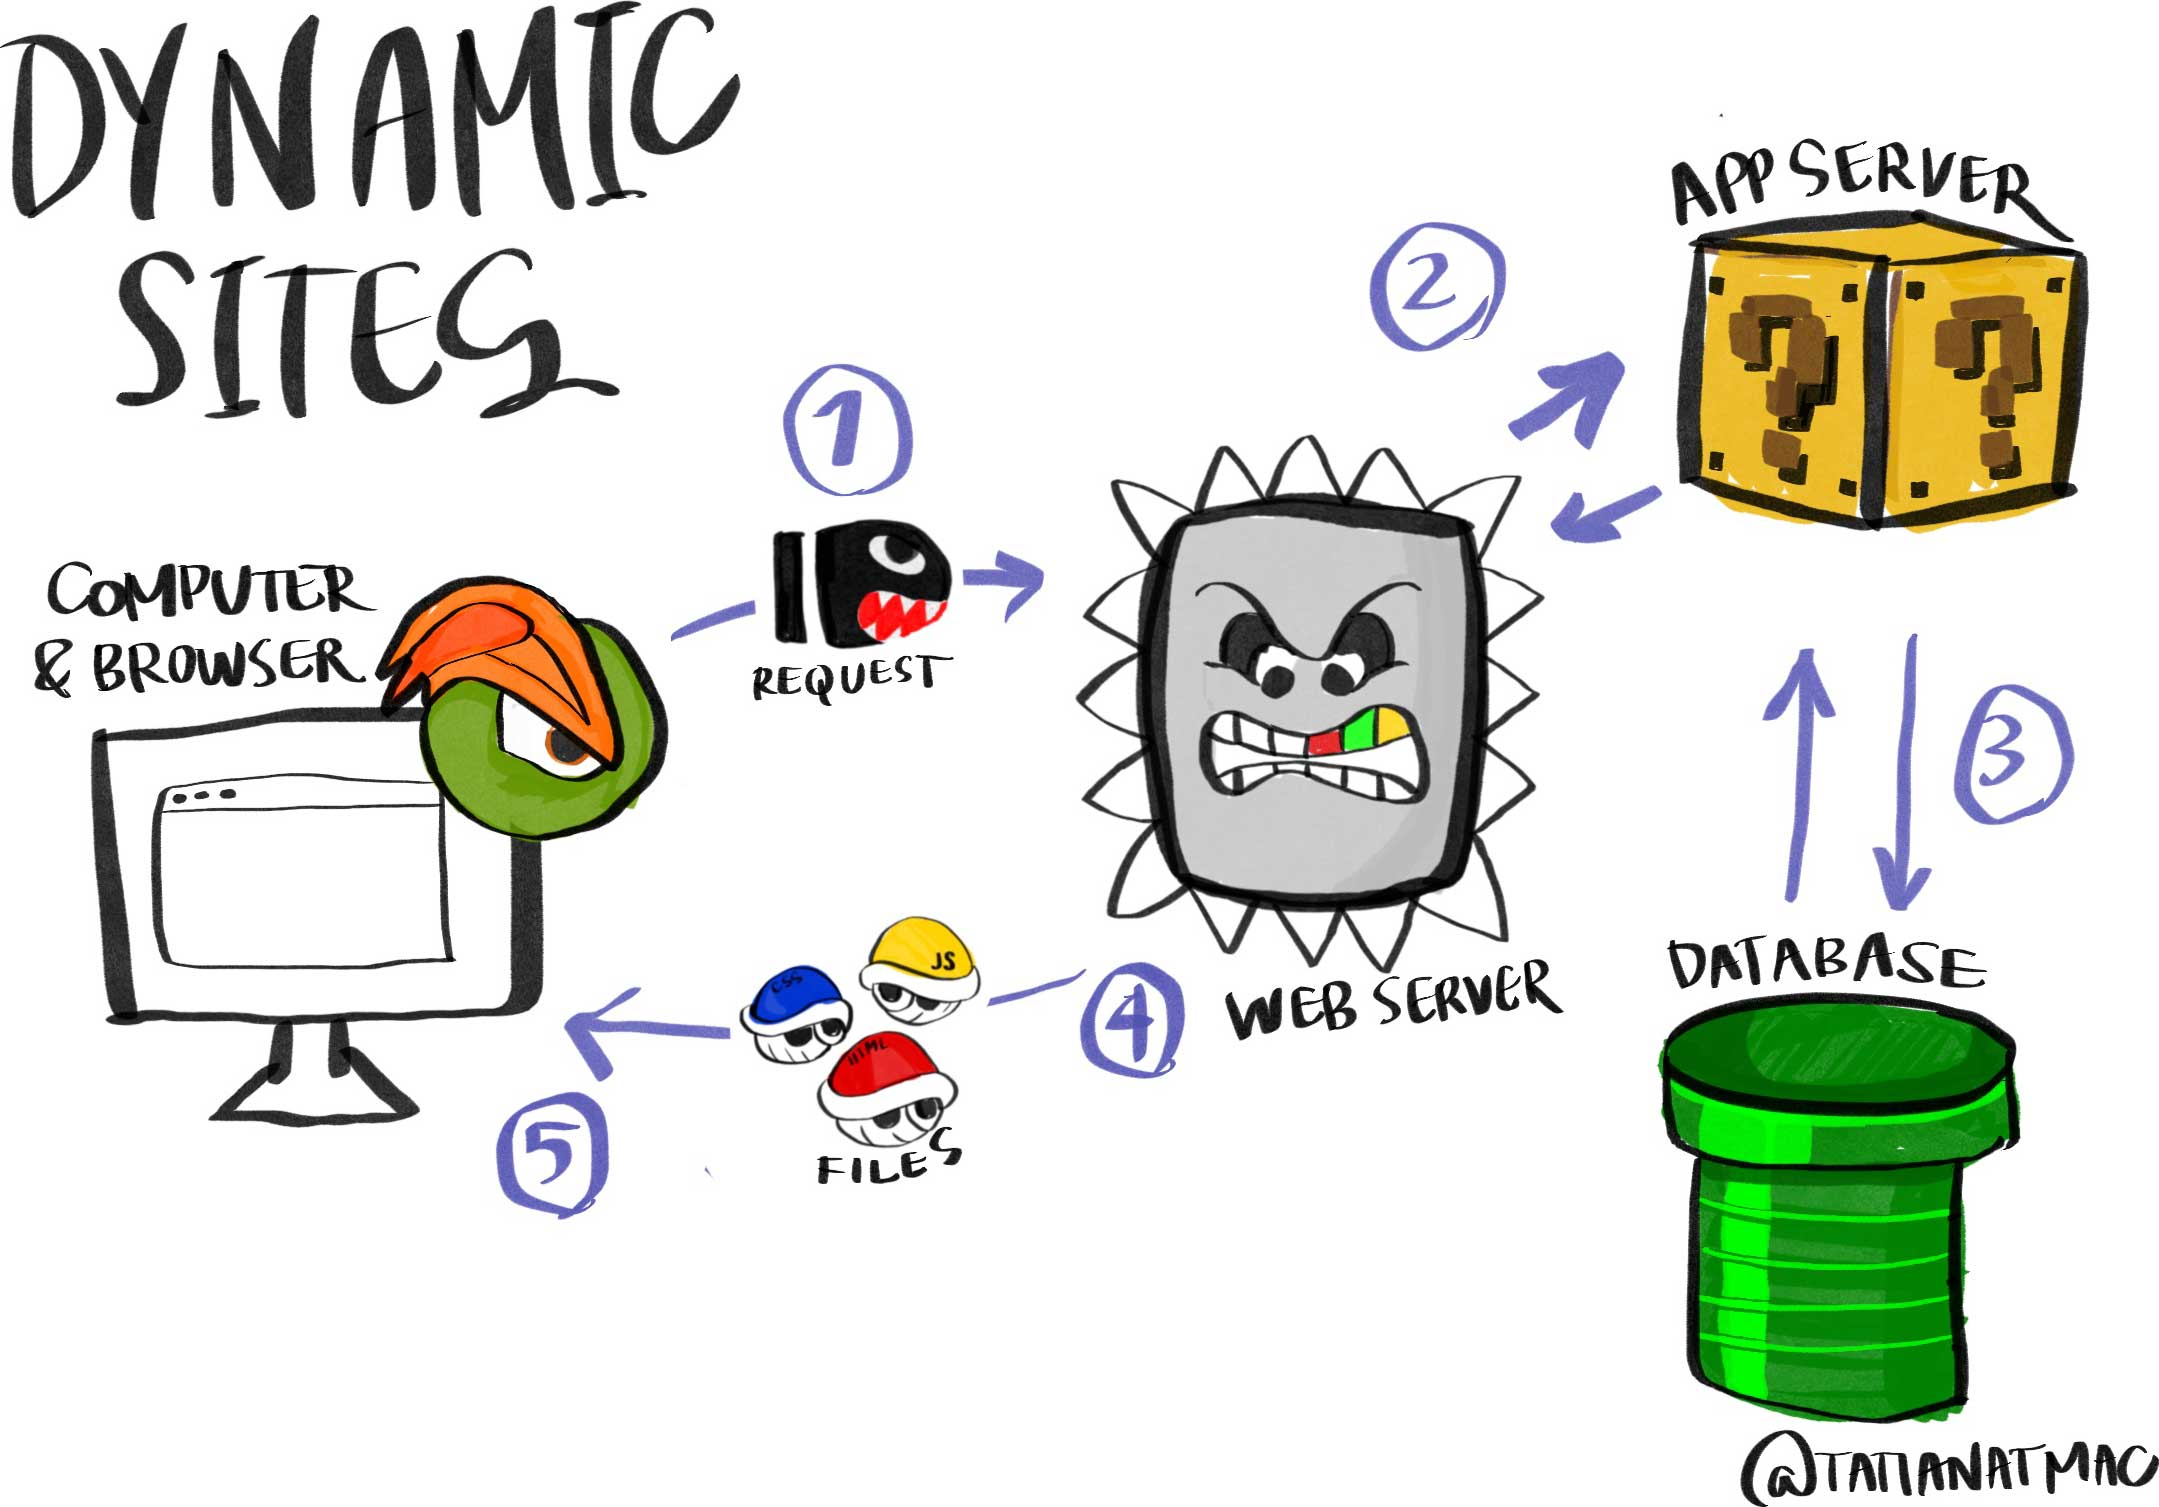 Diagram of static sites where all elements are from Super Mario to illustrate how static sites are generated. Computer and browser (browser logo is Bowser's eye and eyebrow done in Firefox/Edge style) sends a request (Bullet Bill) to the web server (Thomp), which communicates with app server (question mark block), which then communicates with database (pipe) then sends back static files (Koopas dresed as HTML, CSS, and JS files).